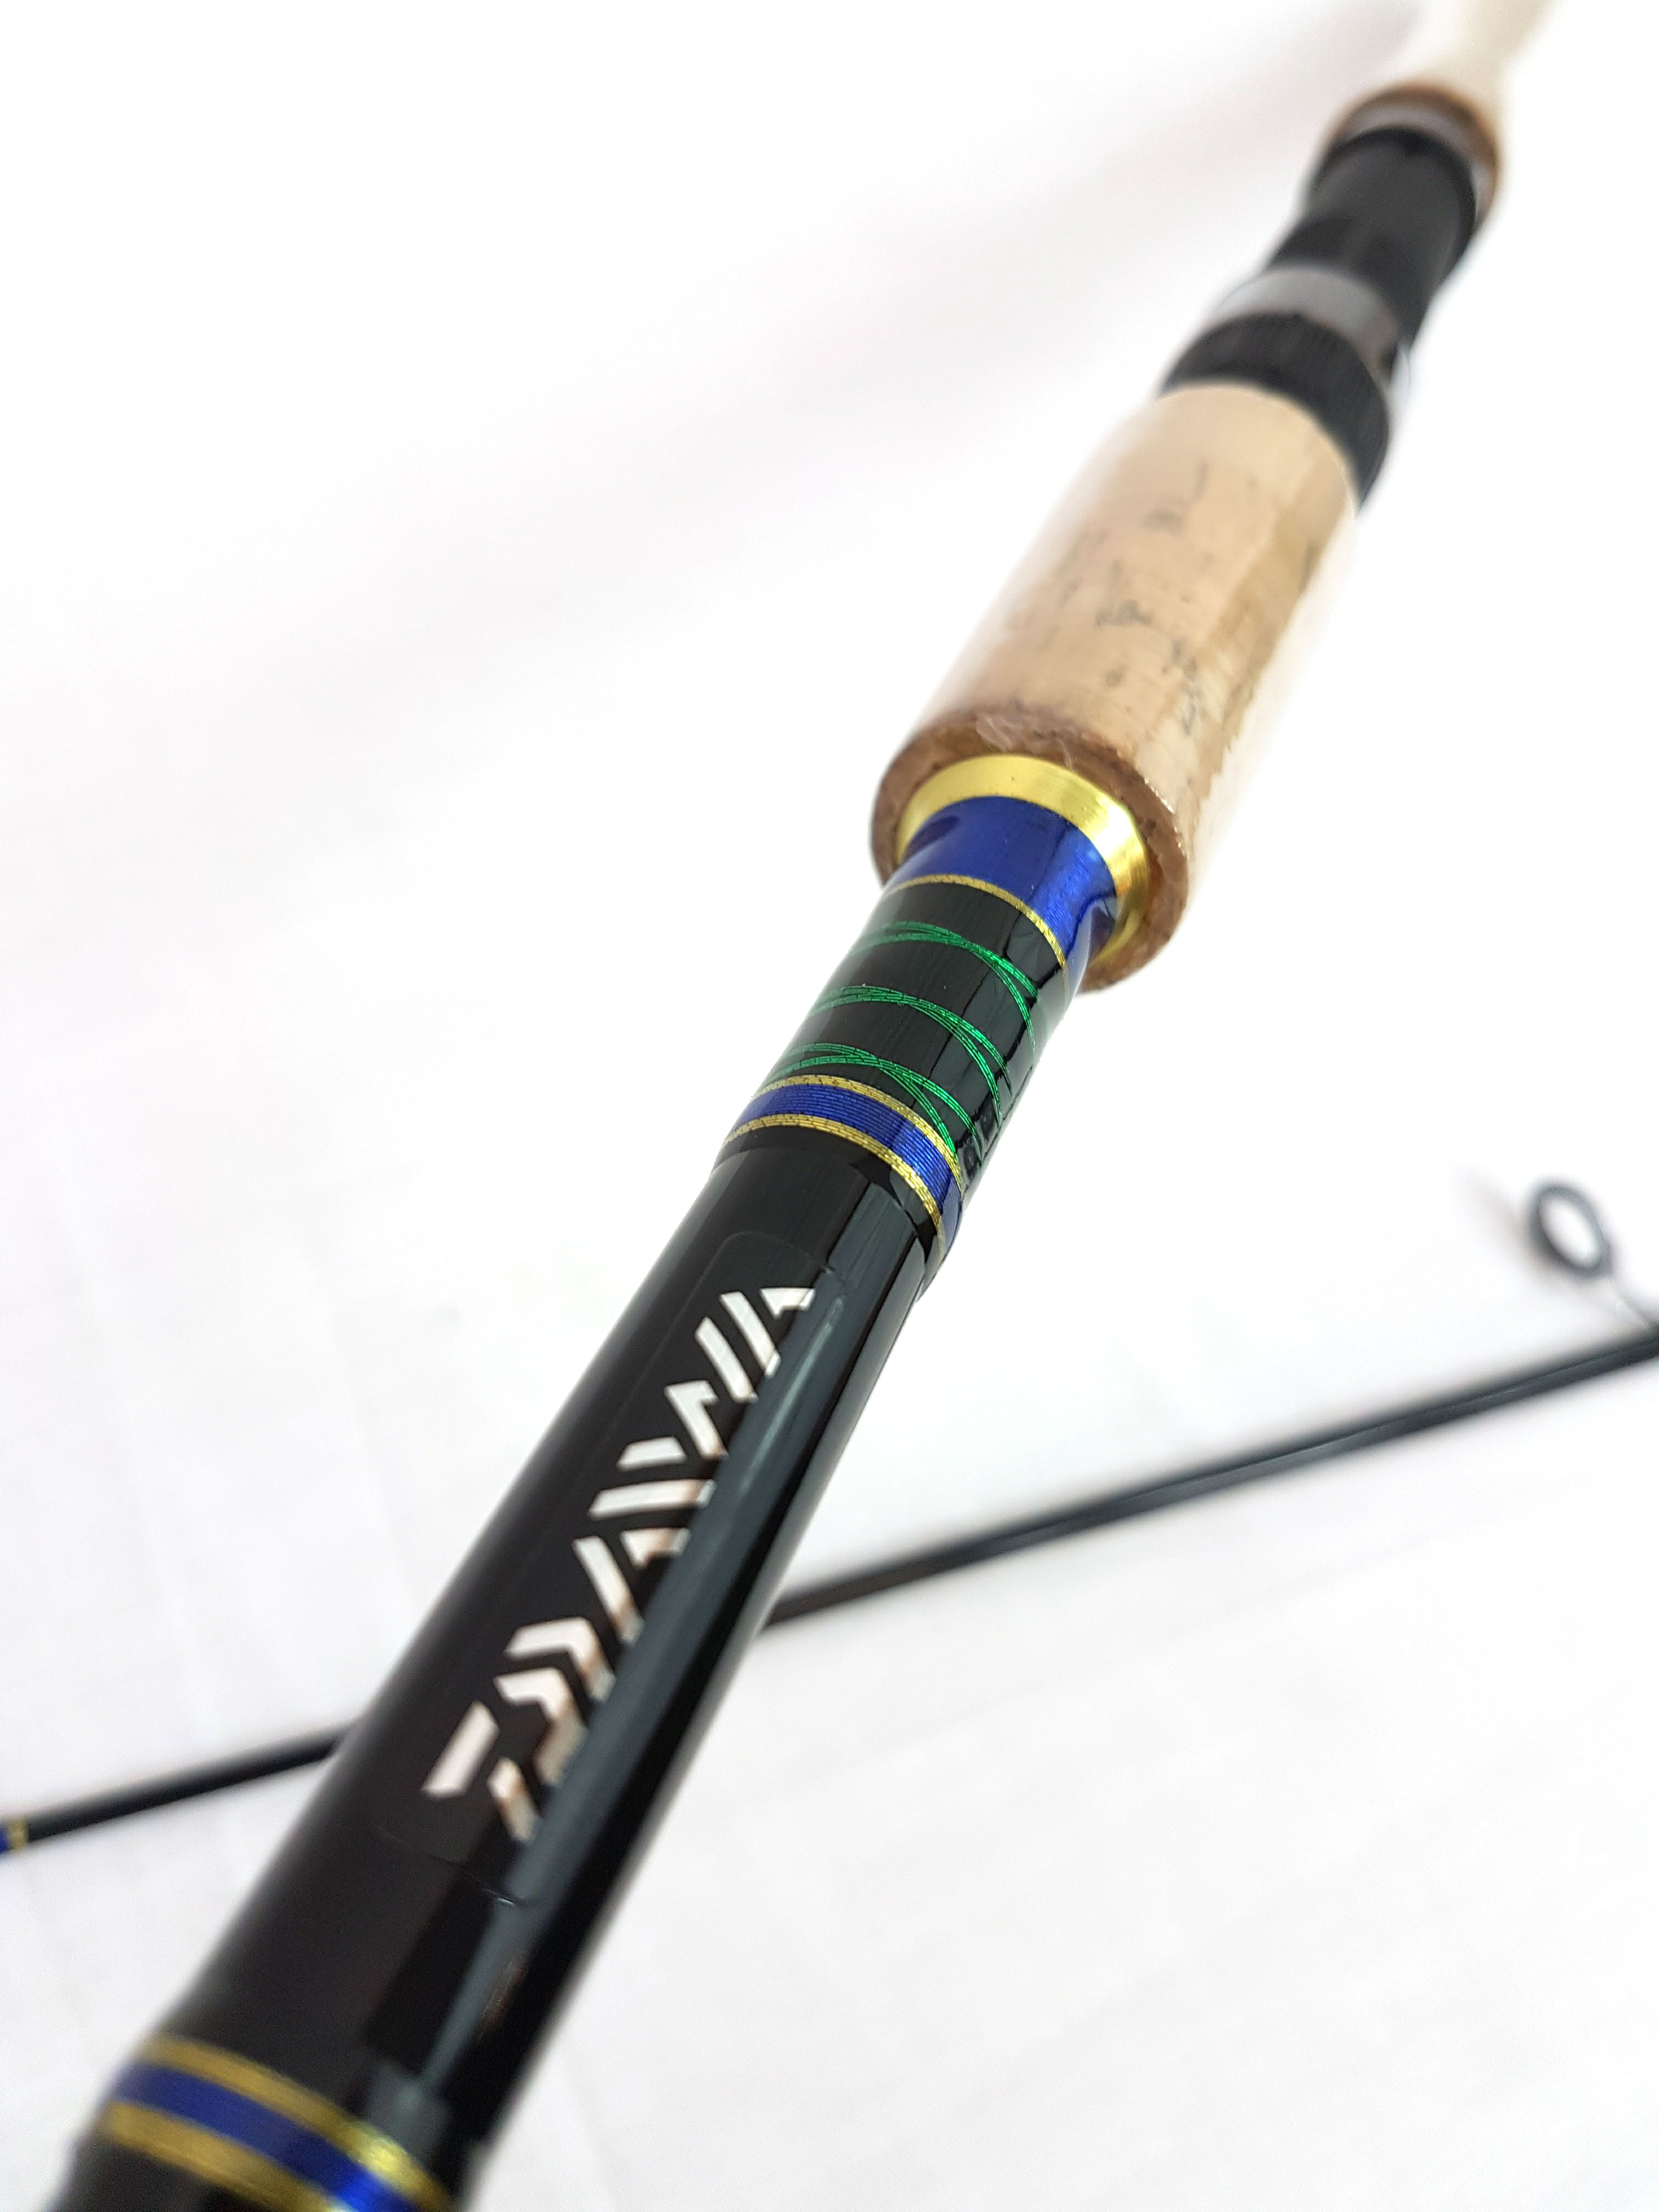 Daiwa sweepfire sw602ms bs6 39 2 pc spinning rod special for Fishing rod clearance